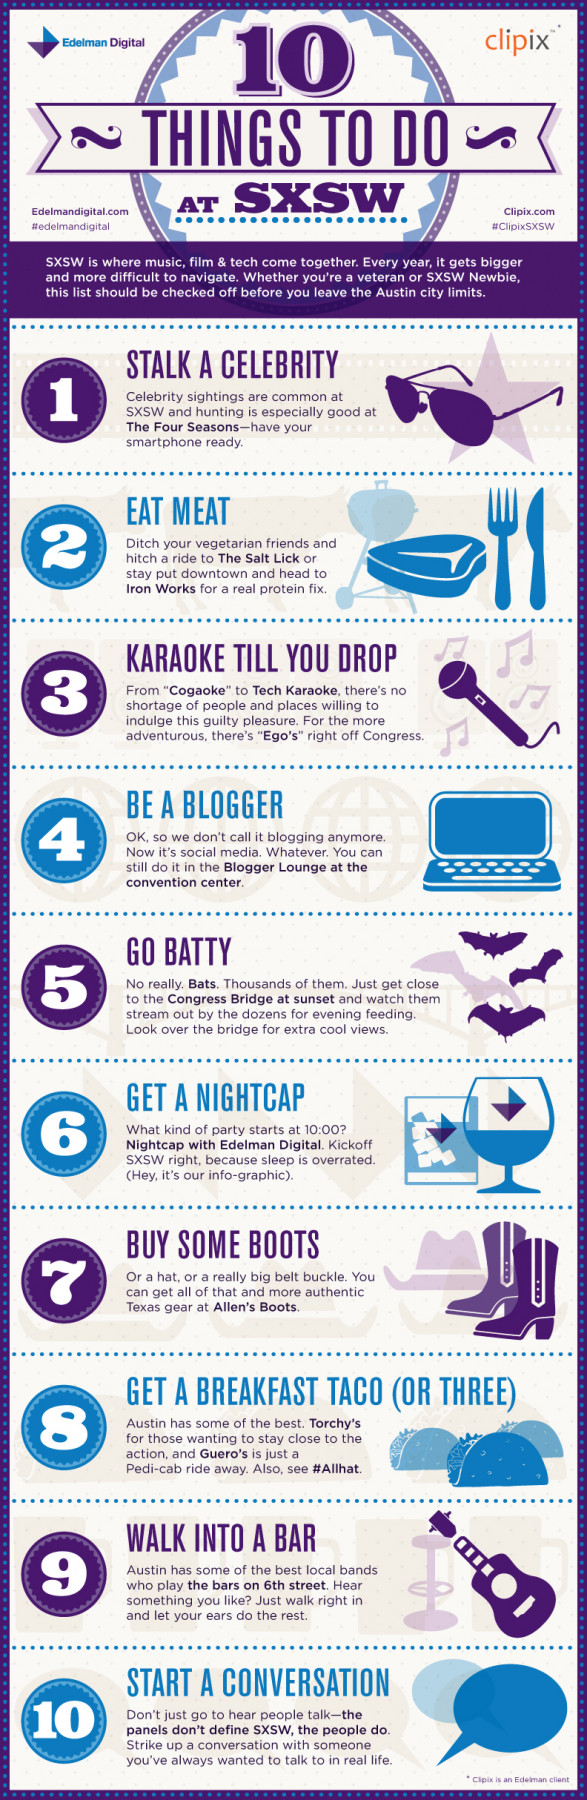 10 Things To Do at SXSW